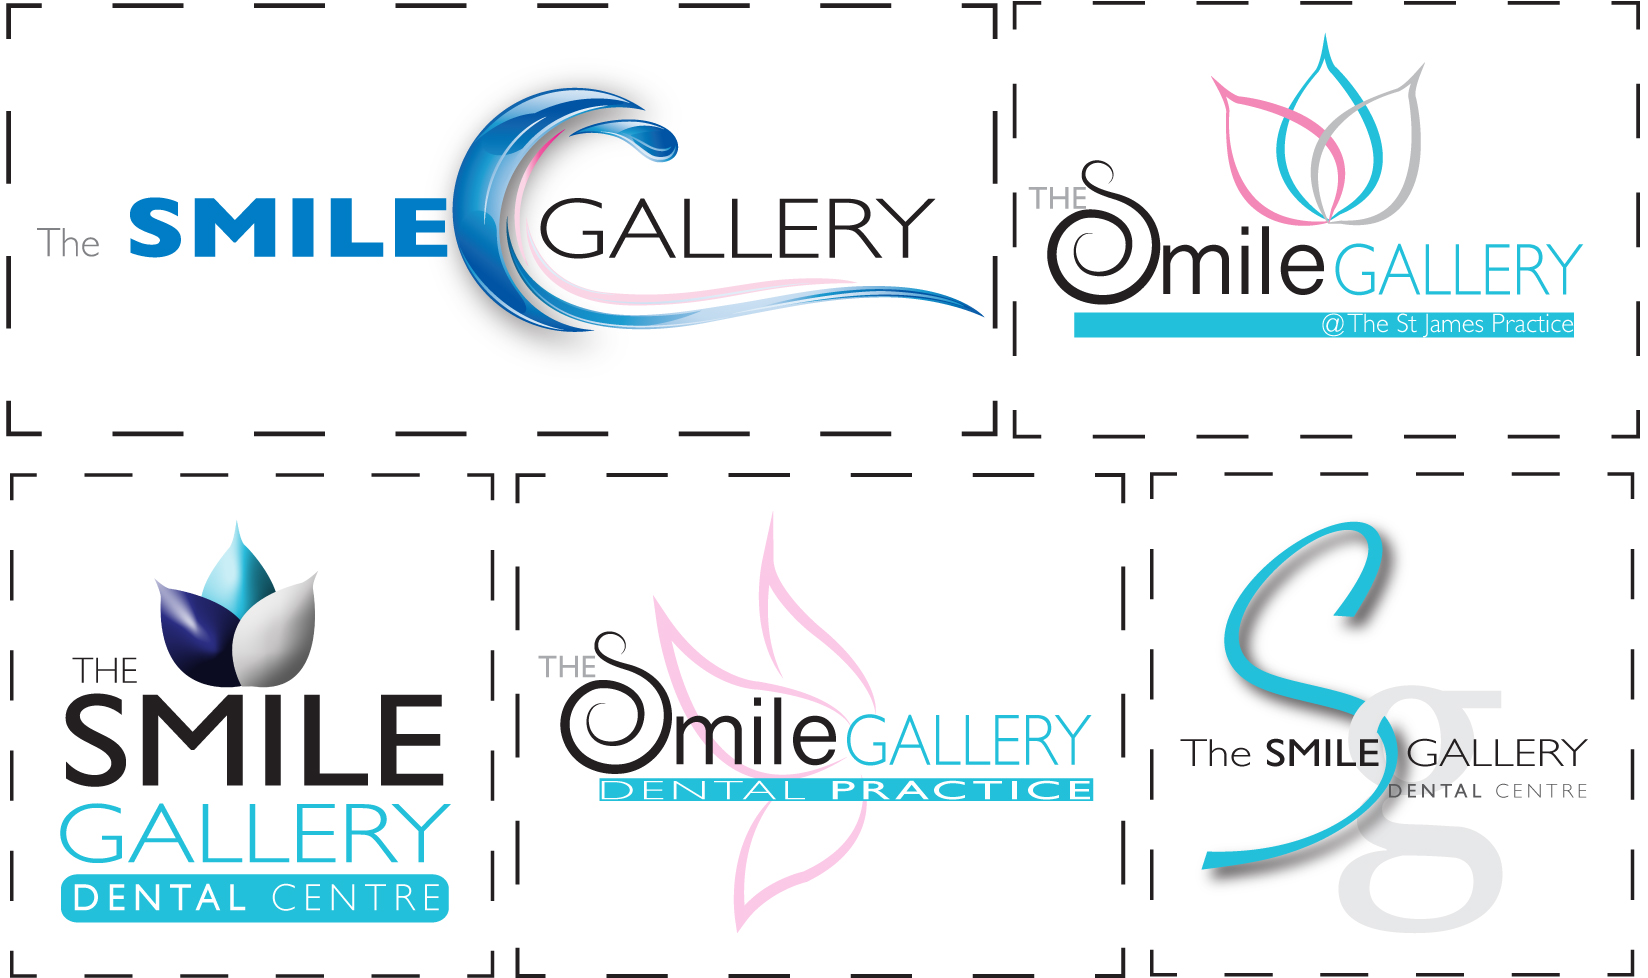 Local dental practice logo design and signage ideas - Cydney Lily